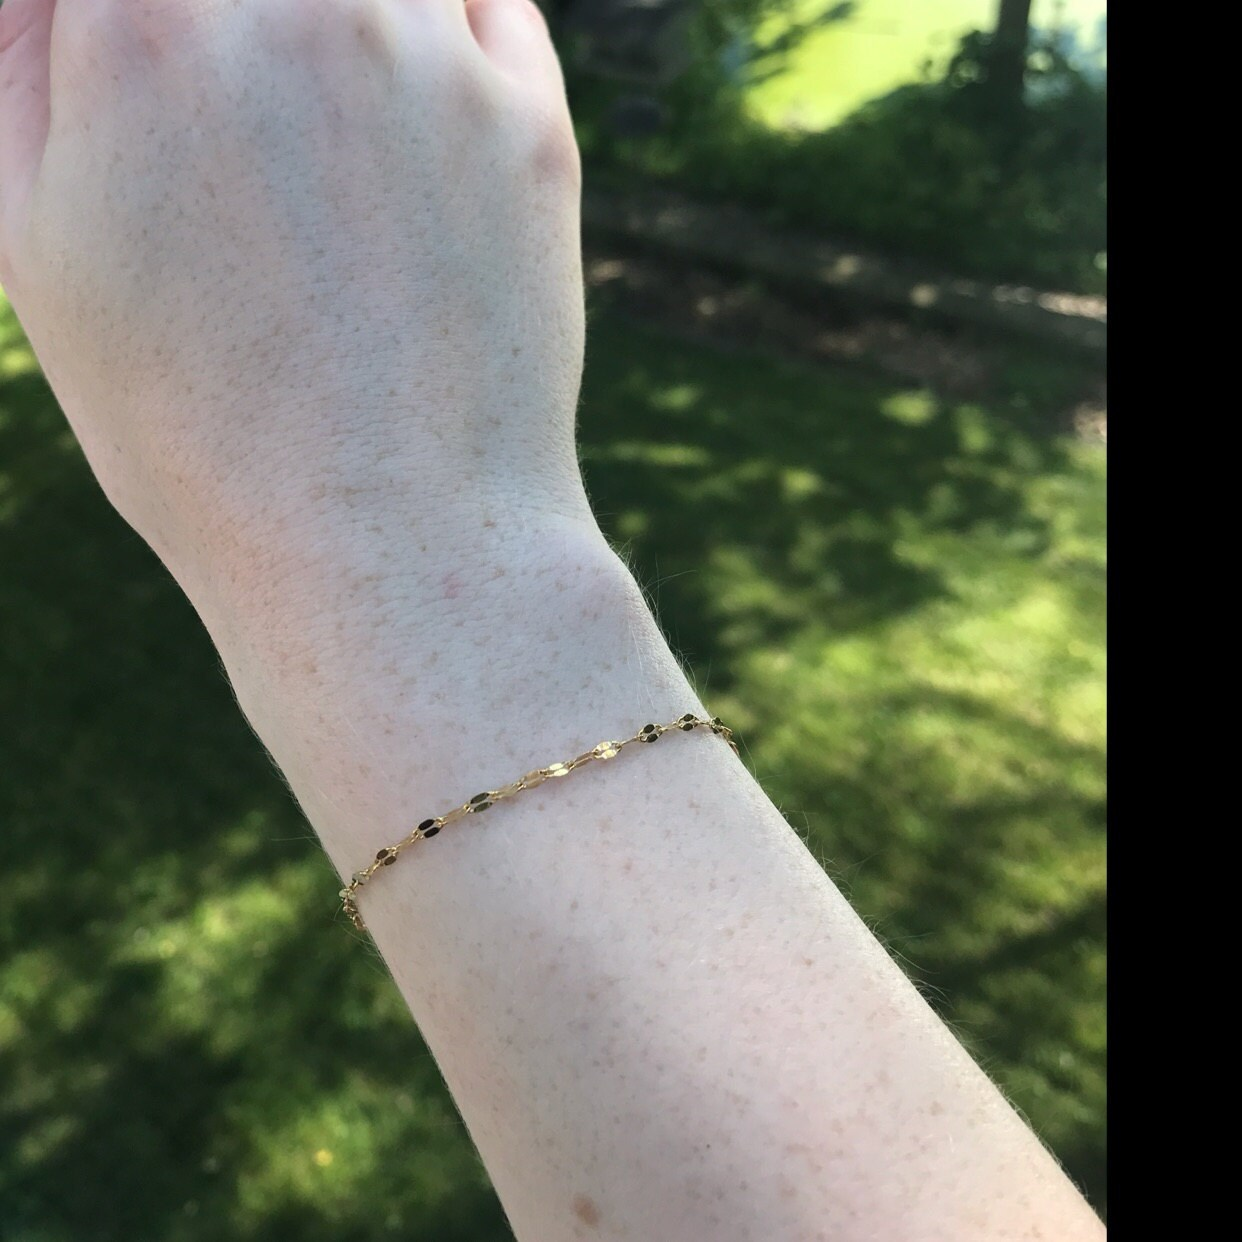 Emily Hendrickson added a photo of their purchase